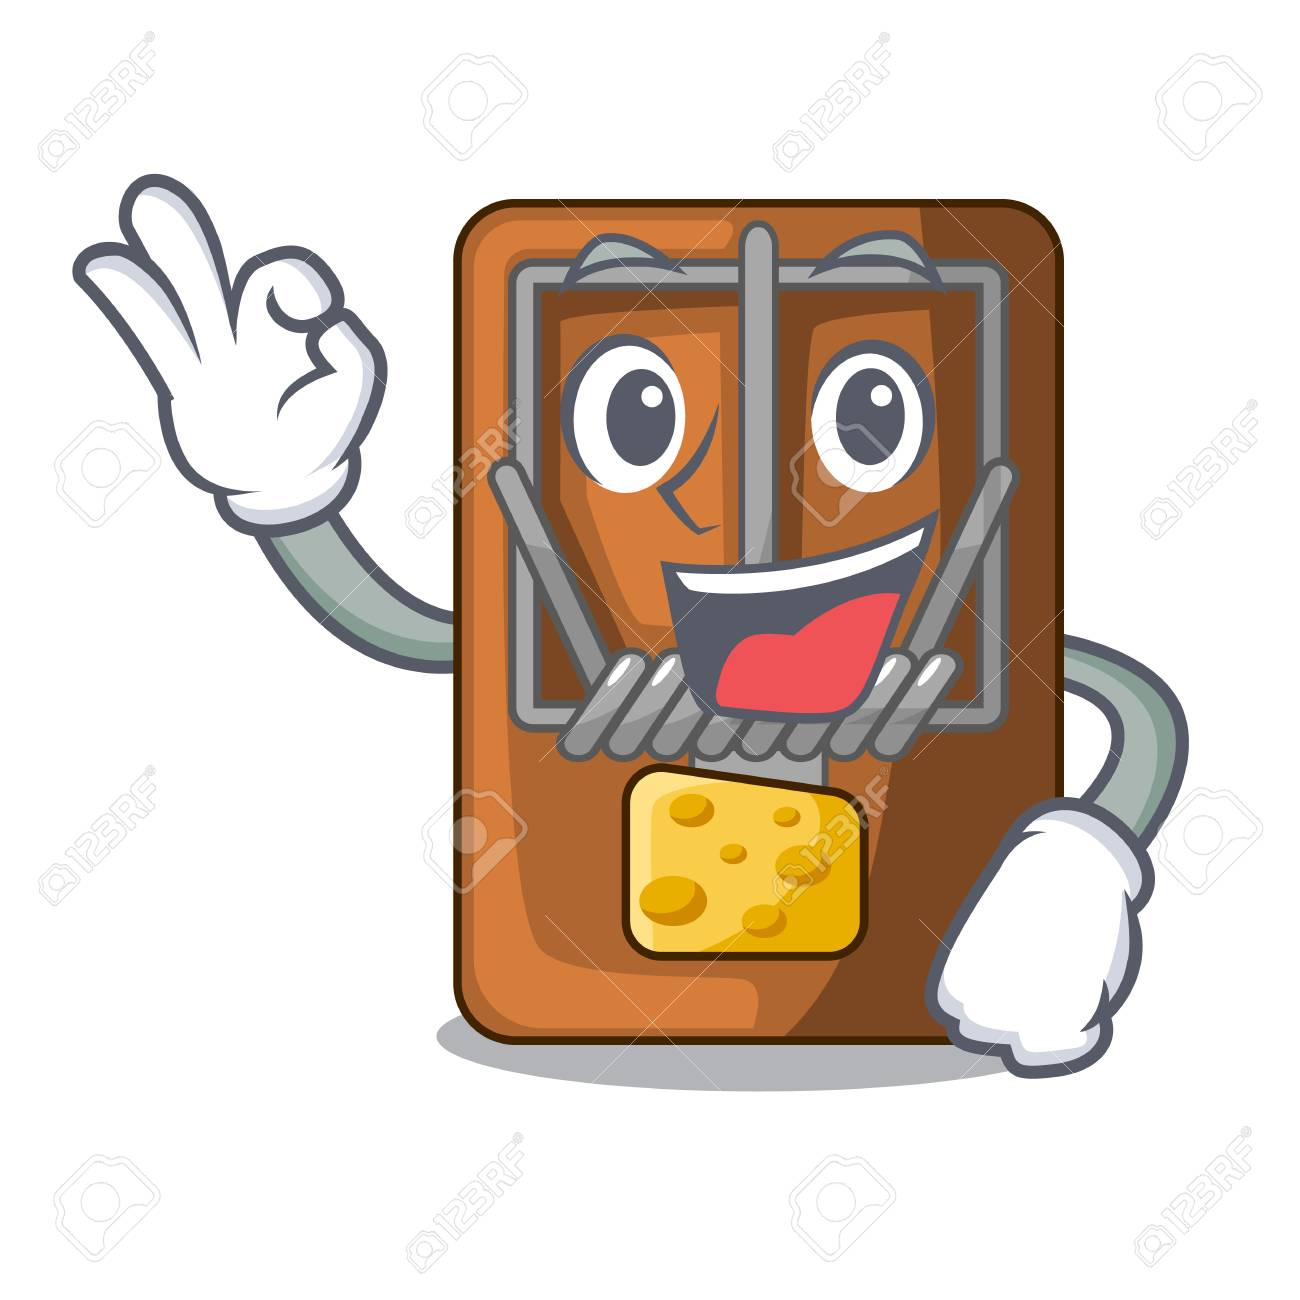 Okay mousetrap in the shape mascot wood vector illustration - 124651565